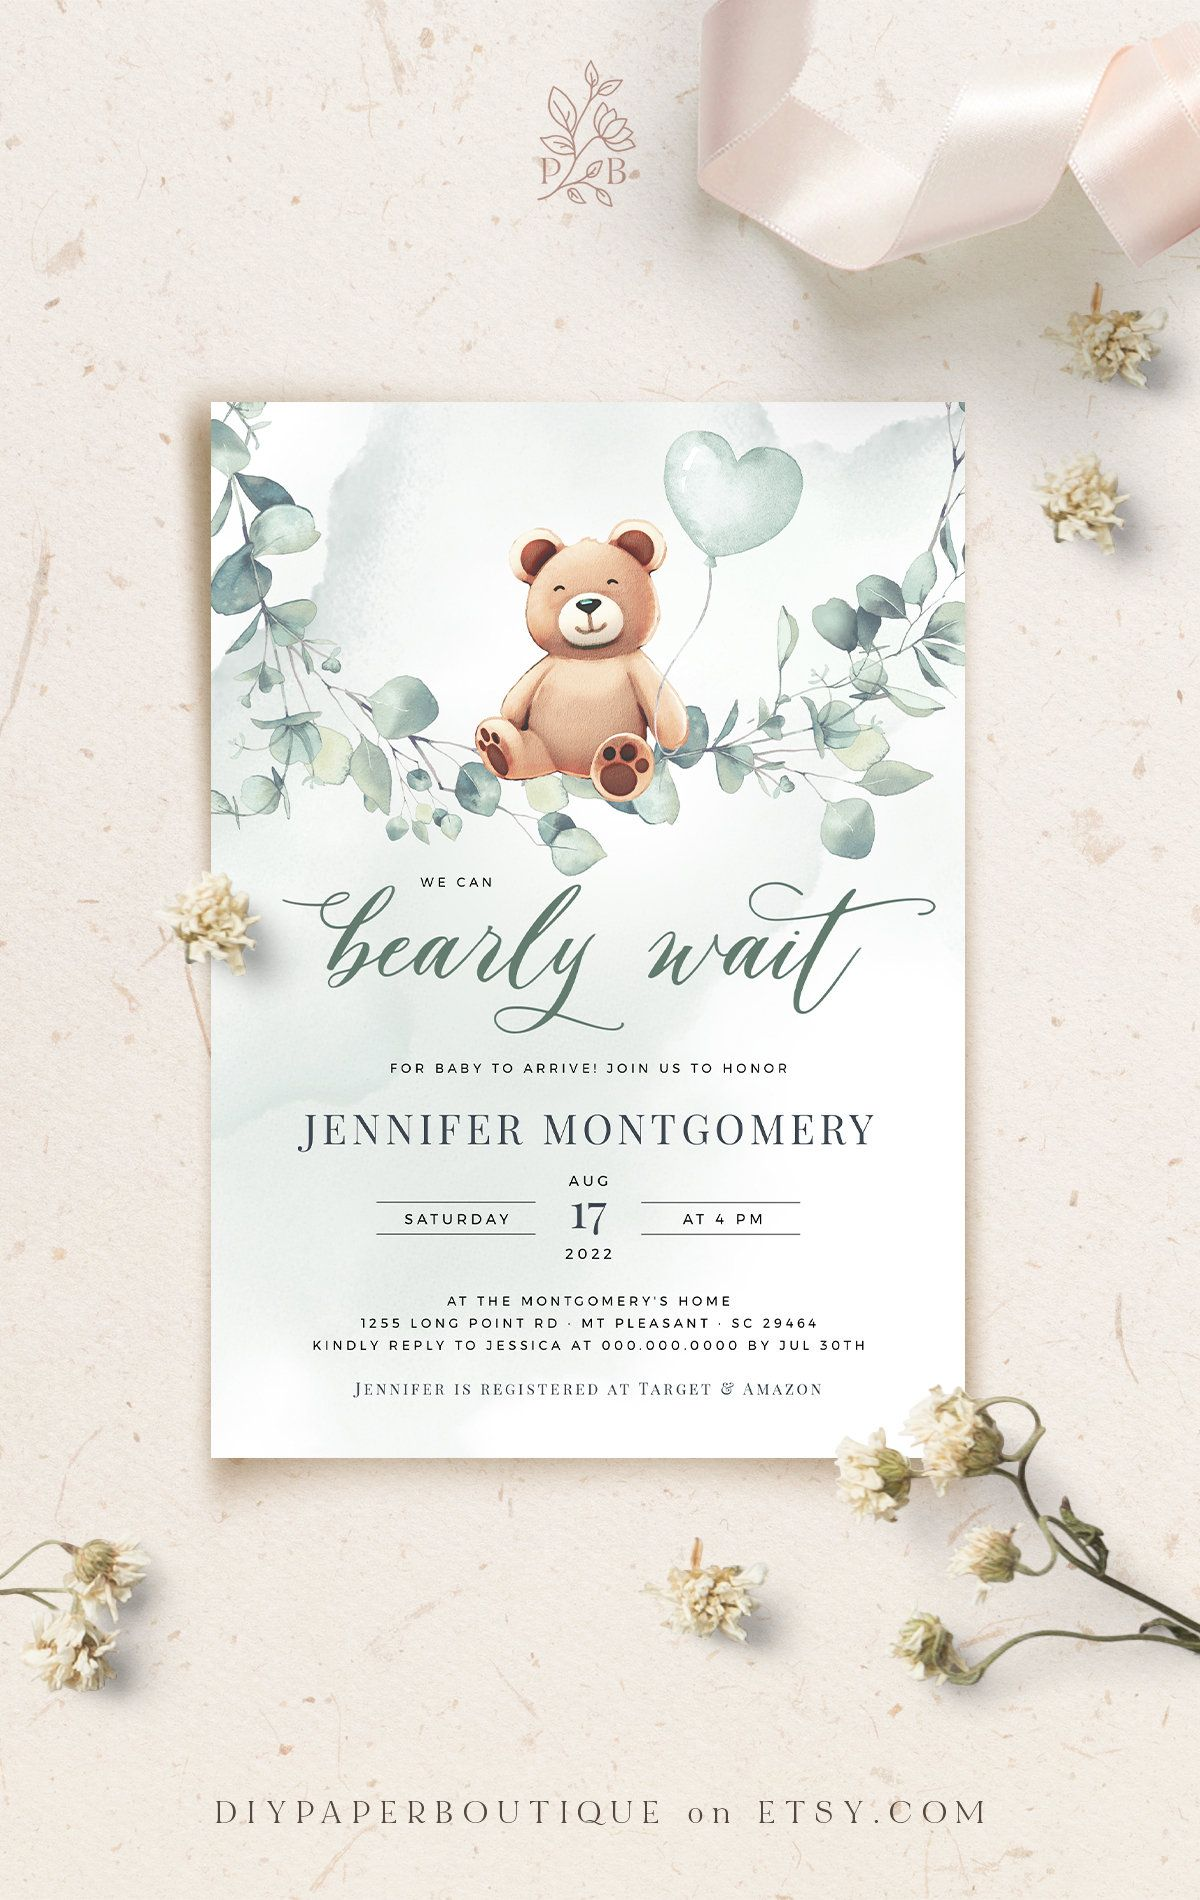 Fuzzy Boy Bear Baby Shower Invitation Template We Can Bearly Wait Watercolor Baby Bear Boy Invite Printable Bear Shower Invite Editable Baby Shower Invitation Templates Bear Invitations Baby Shower Invitations For